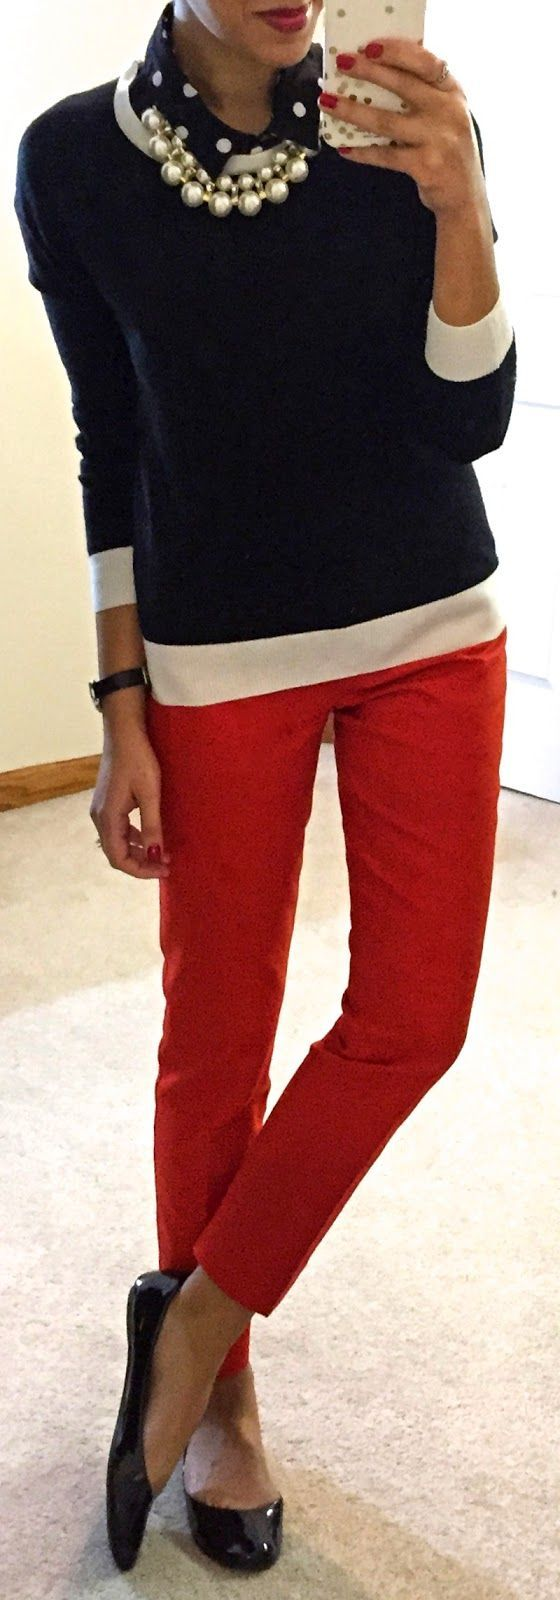 I'm loving the red straight ankle slacks for school.  The navy top and pearls make it classy